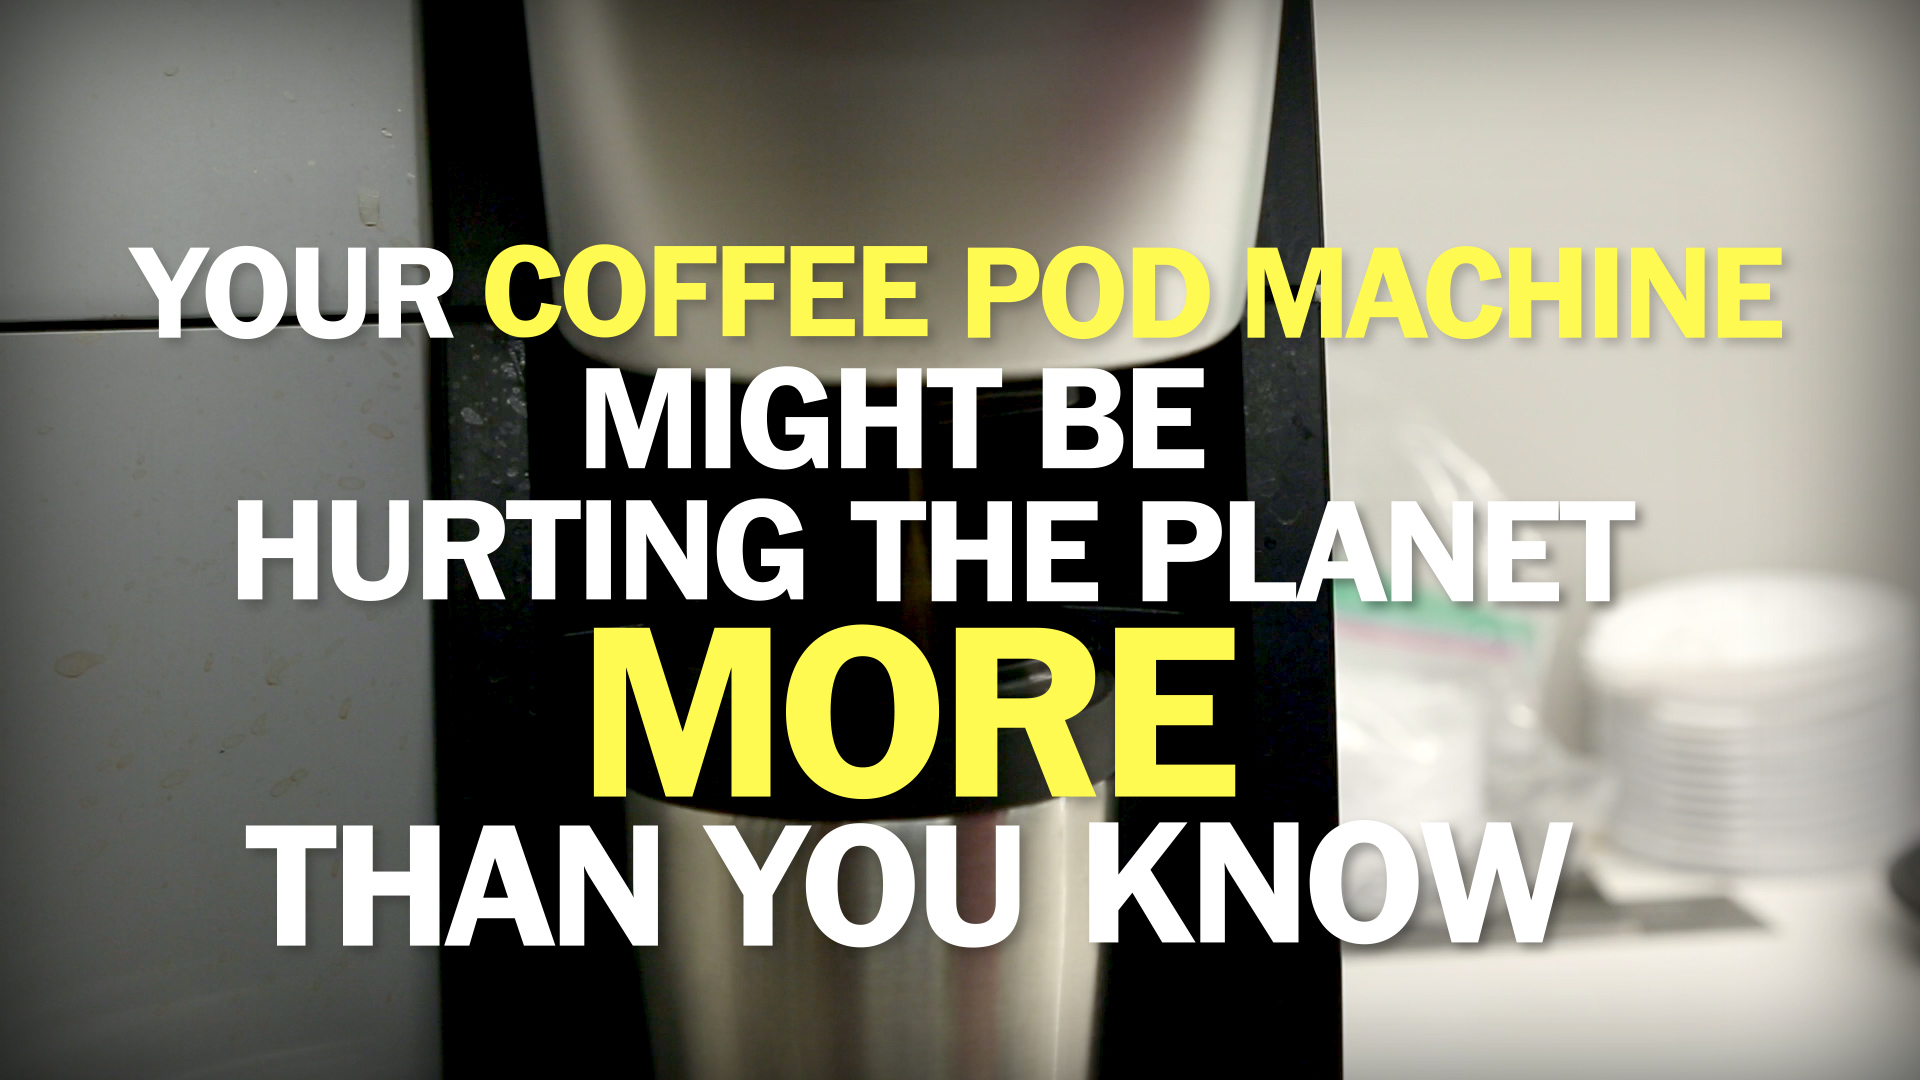 How to never spill your coffee, according to science